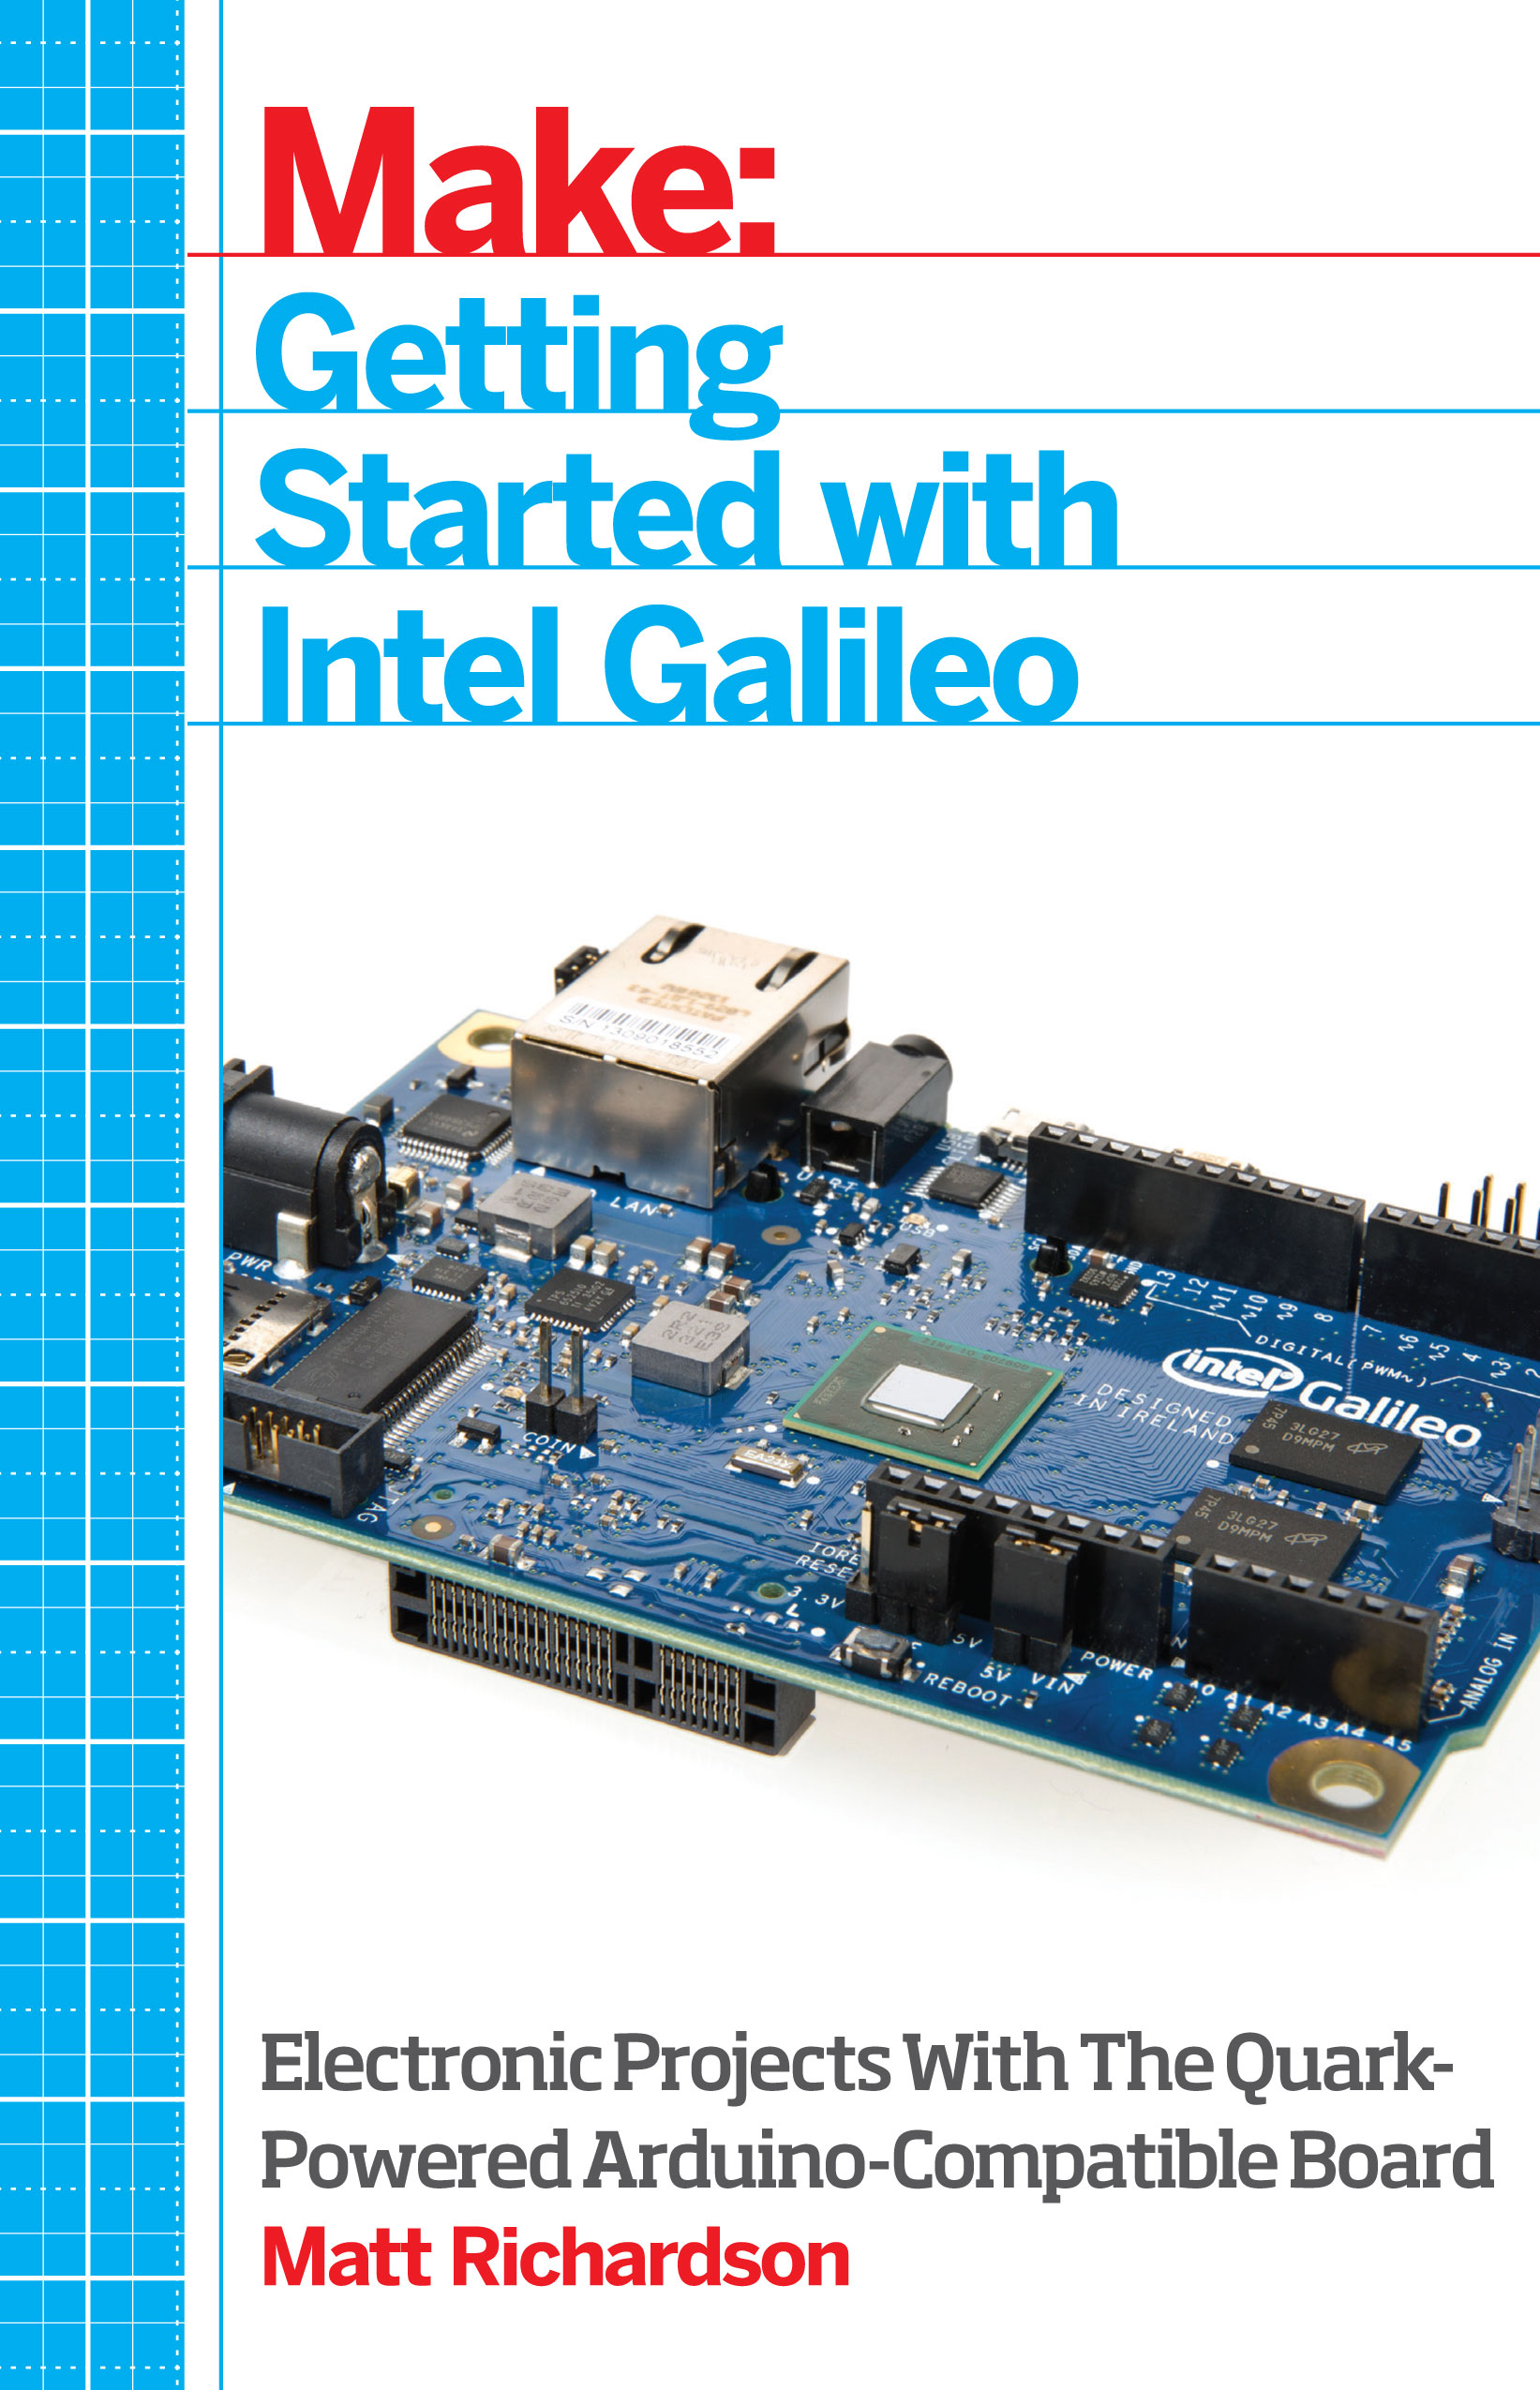 Getting Started with Intel Galileo - Matt Richardson, Creative ...